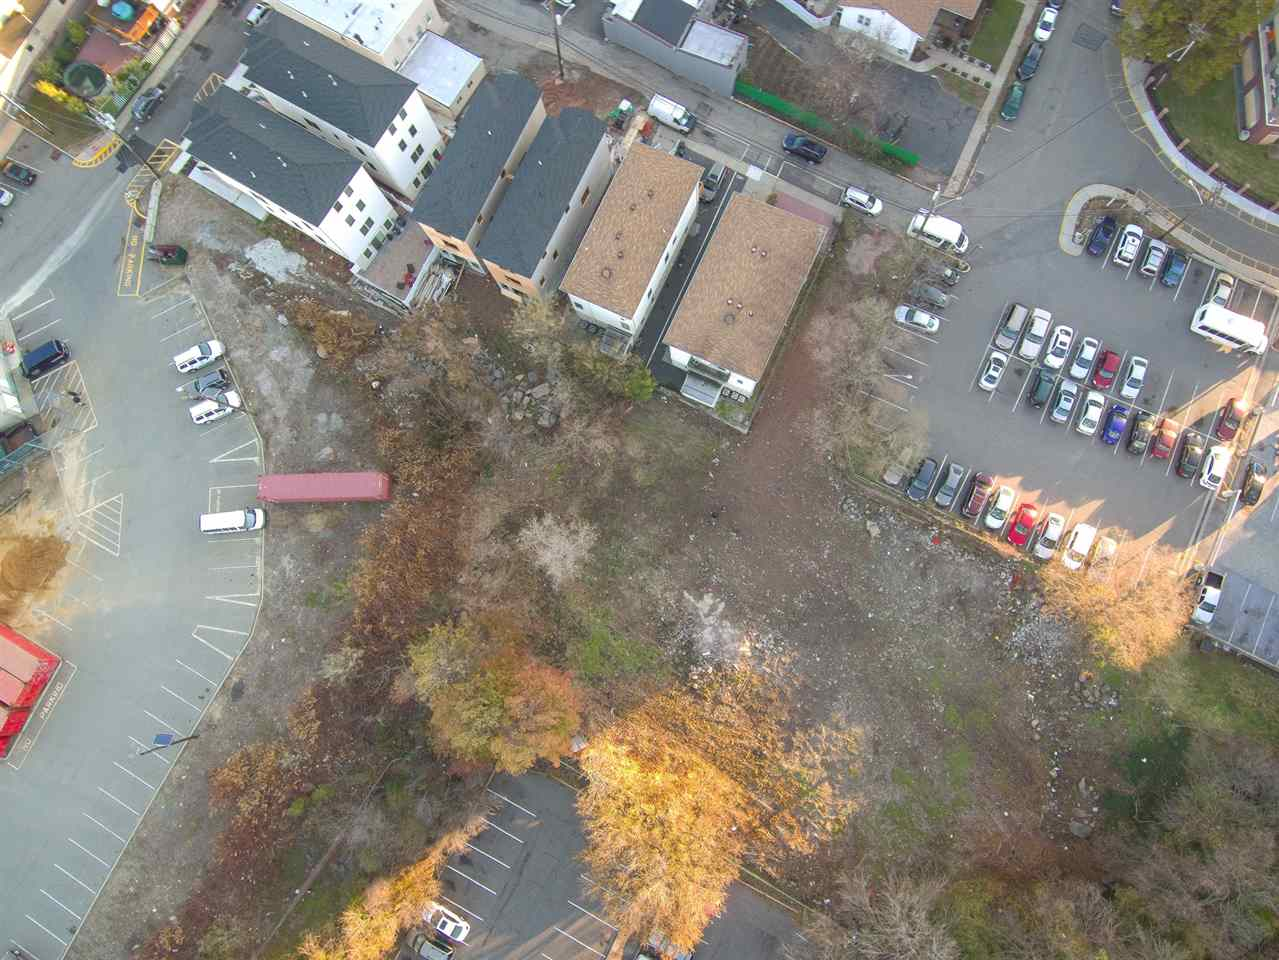 6217-6233 MEADOWVIEW AVE, North Bergen, New Jersey 07047, ,Lots And Land,For Sale,6217-6233 MEADOWVIEW AVE,190009793